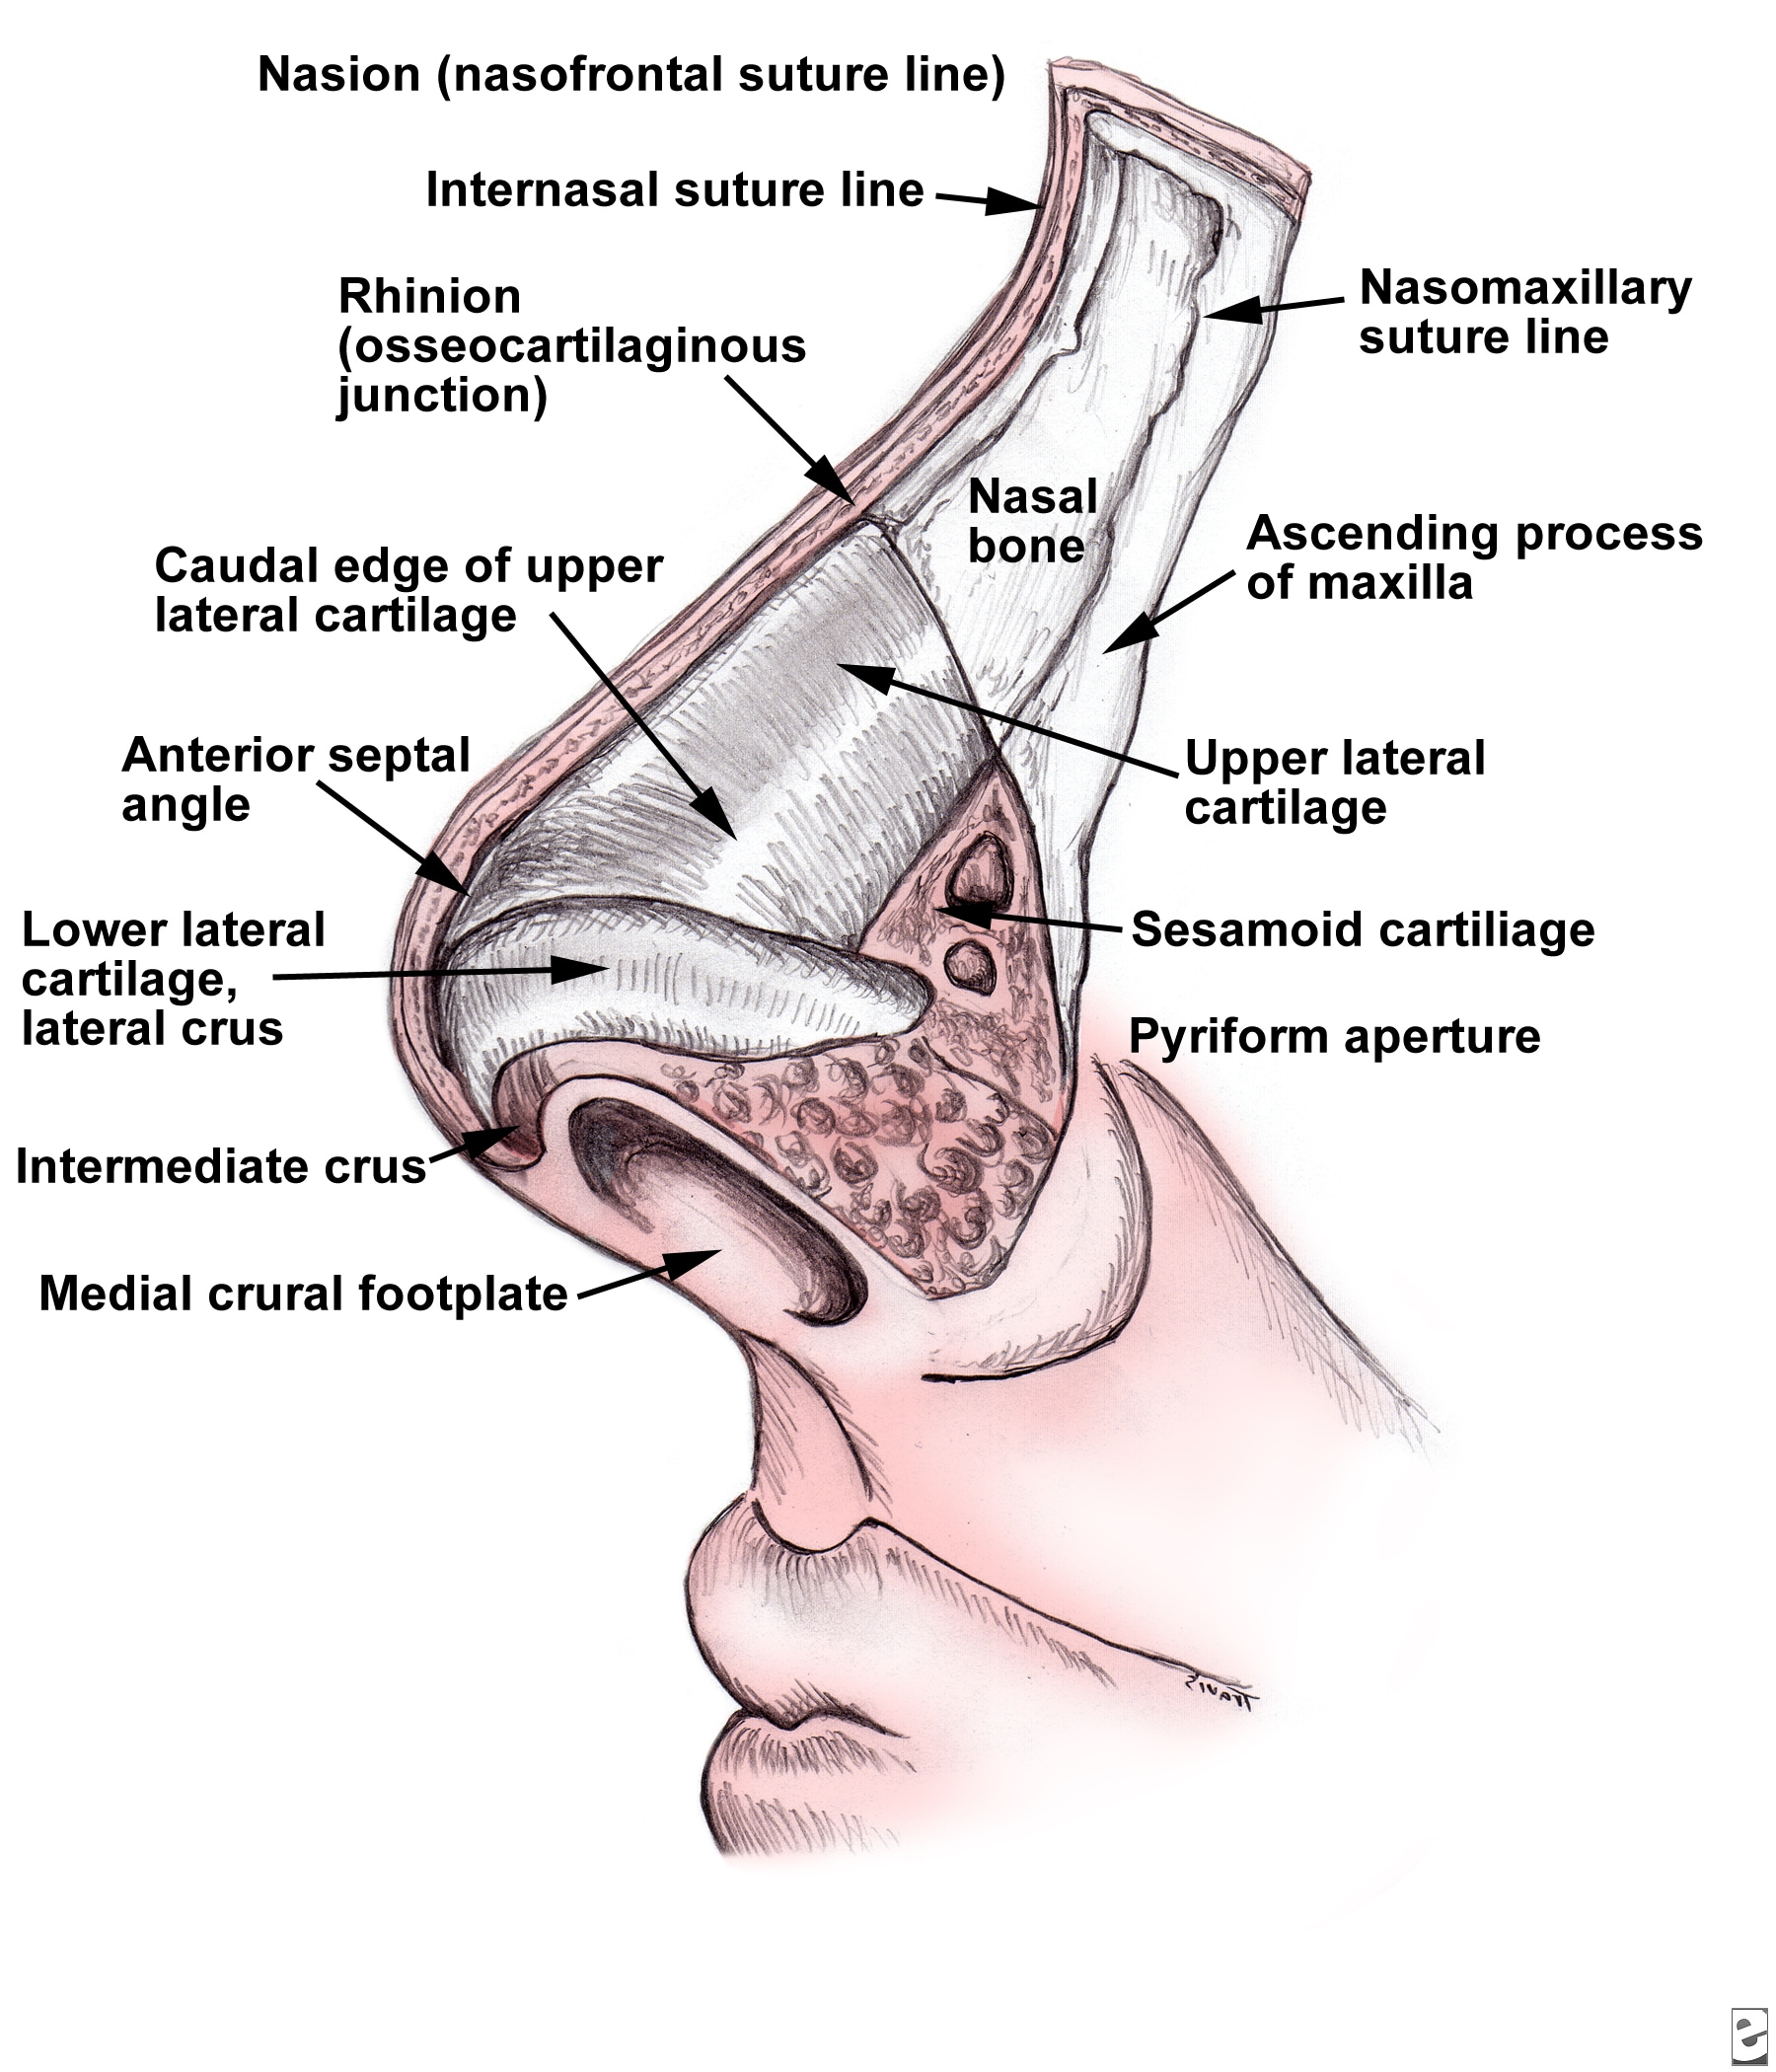 ORAL & MAXILLO-FACIAL SURGERY: Nasal and Septal Fractures